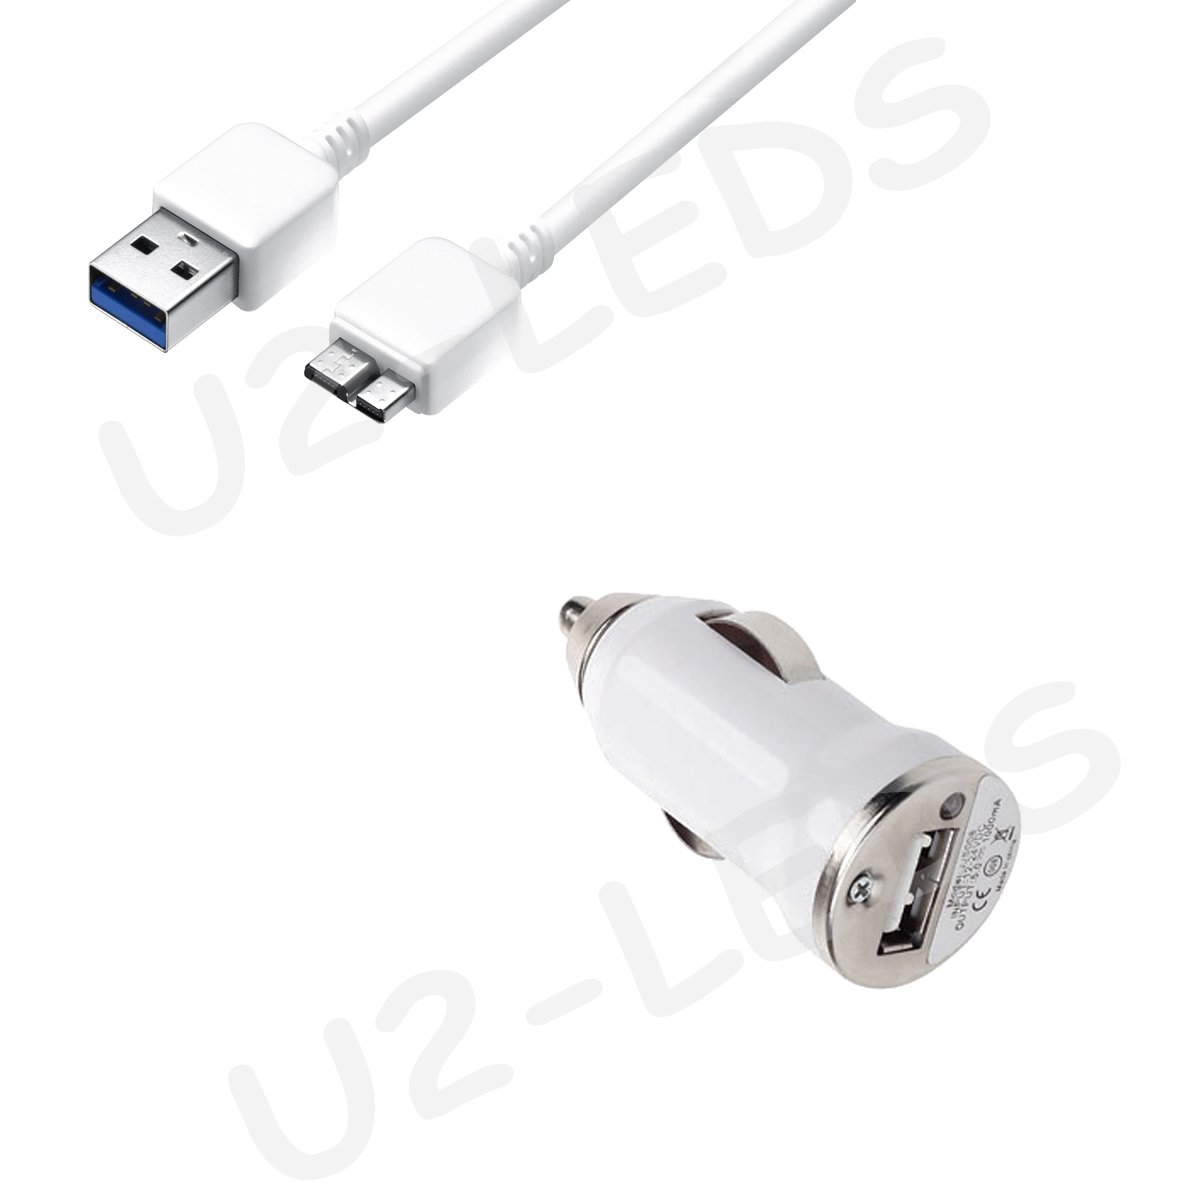 Car Charger + USB 3.0 Data Sync Cable Cord for Samsung Note 3 Galaxy S5 N9000